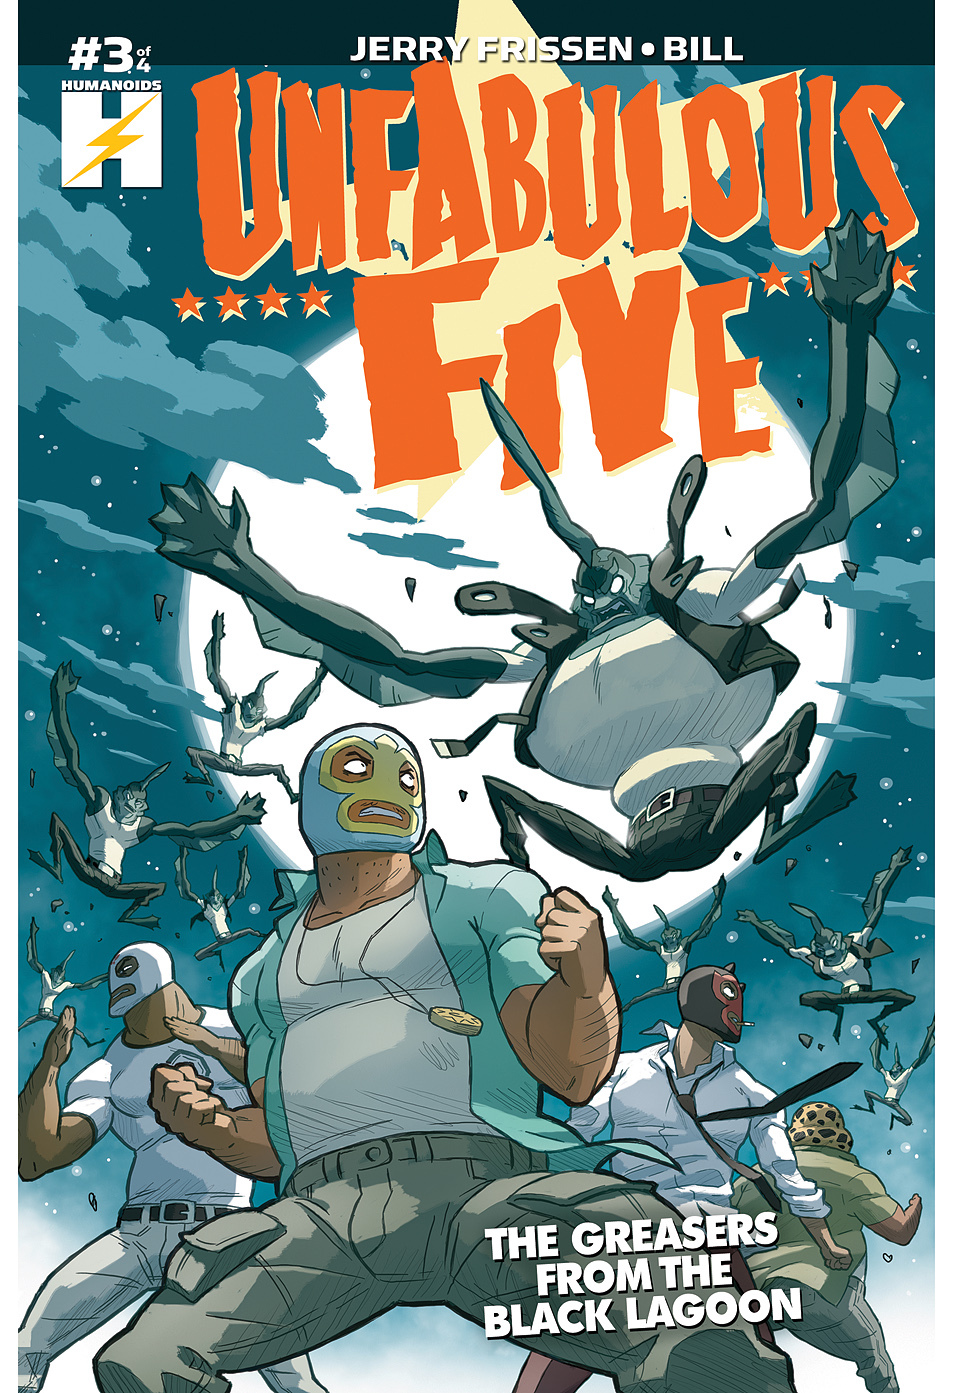 Unfabulous Five - Digital Comic #3 : Unfabulous Five: The Greasers From The Black Lagoon 3 of 4